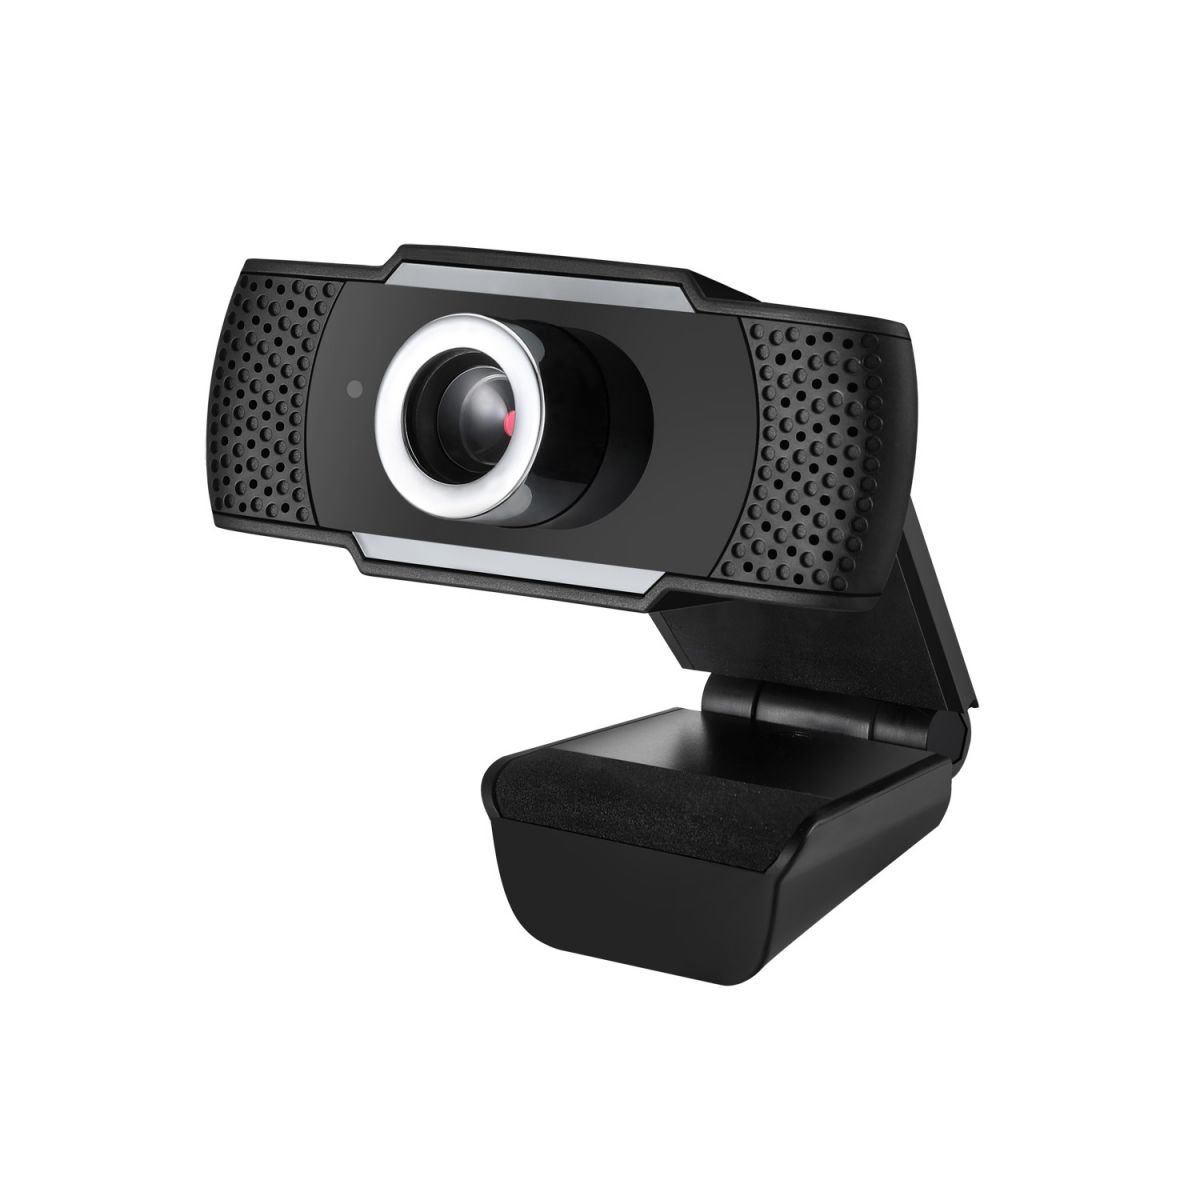 adesso cybertrack h4 1080p webcam usb